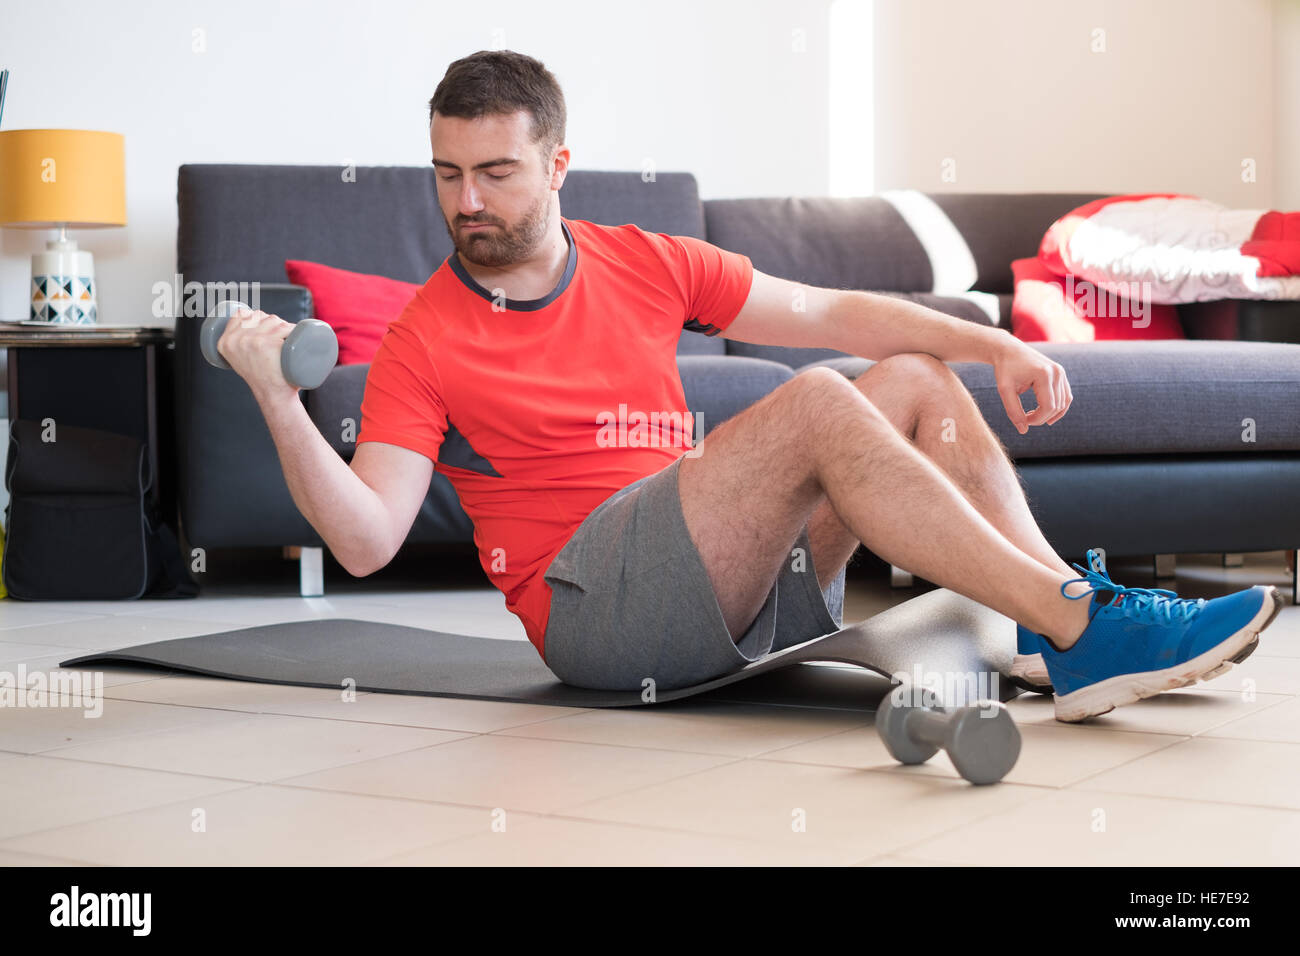 Man doing body exercise and working out at home - Stock Image